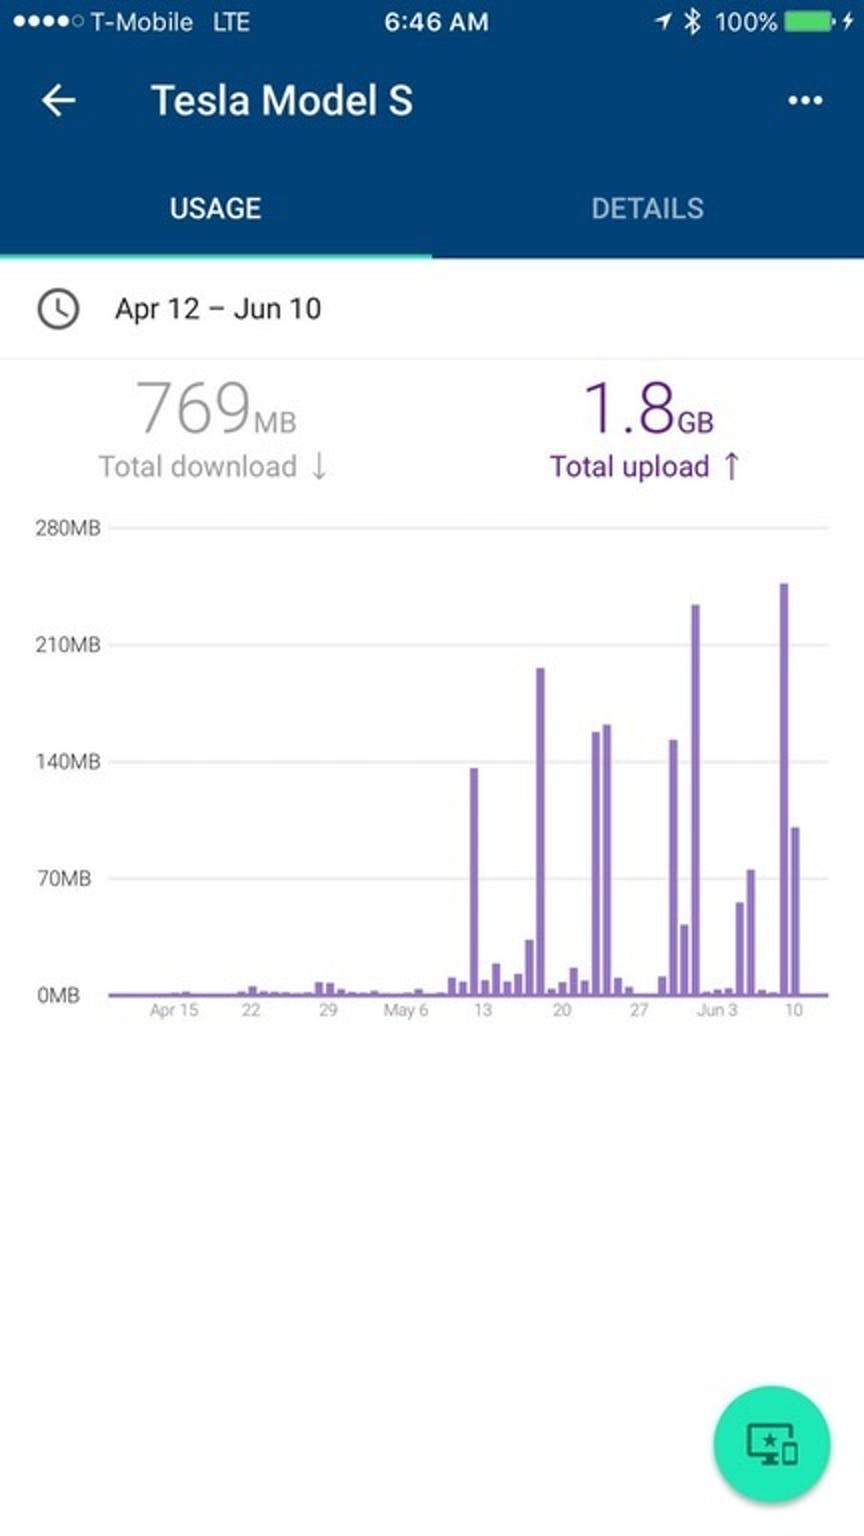 The spike in uploads